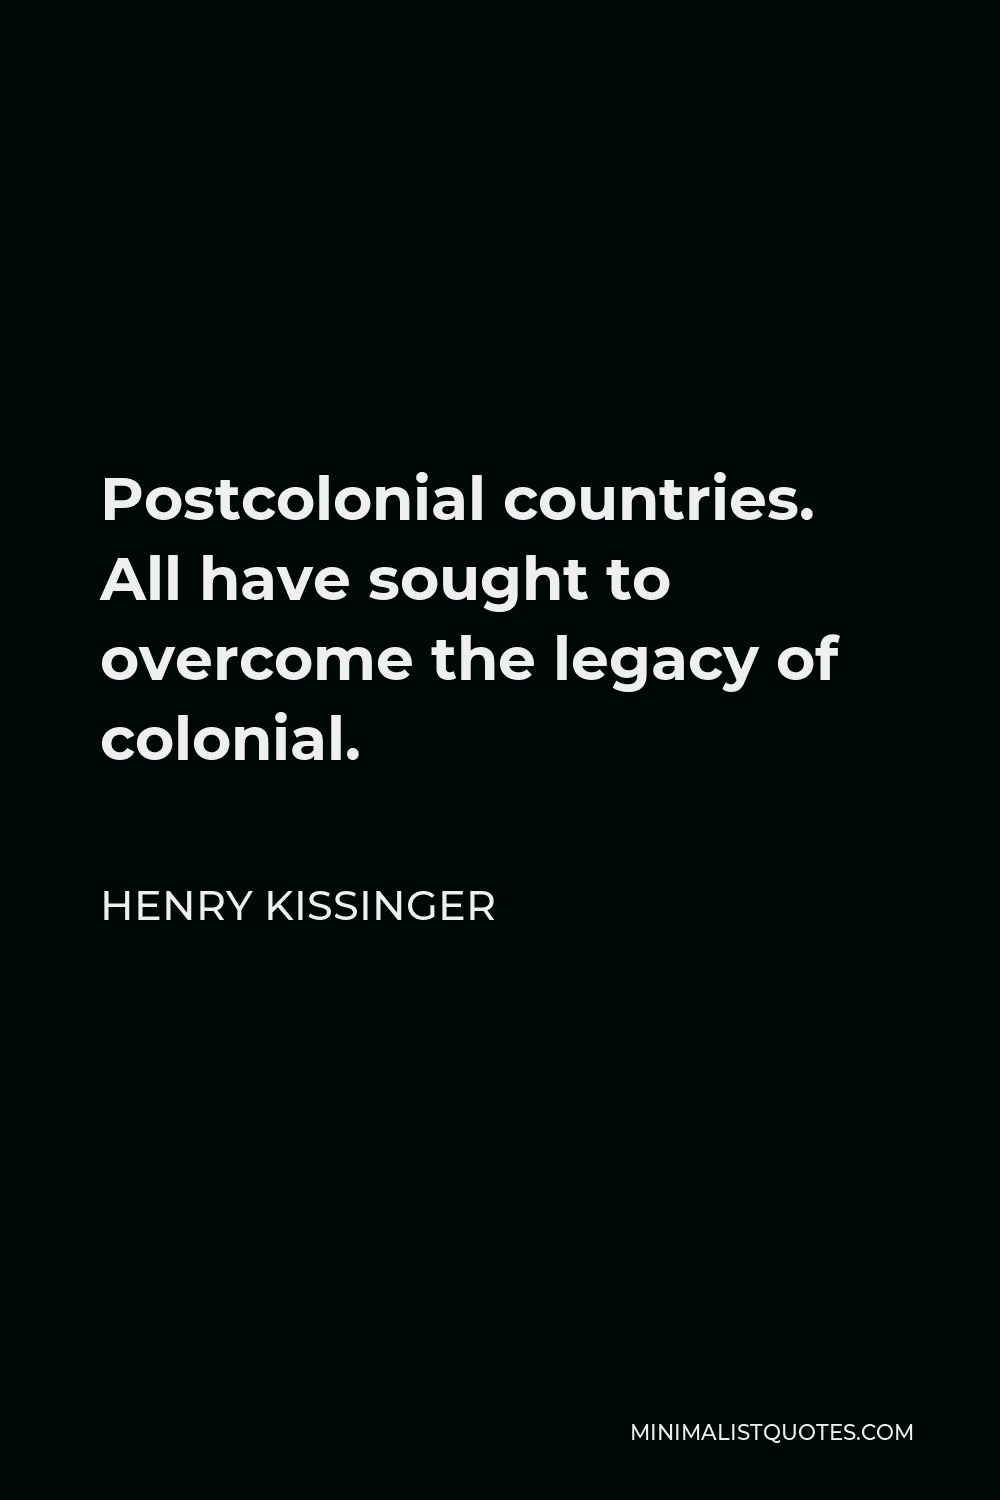 Henry Kissinger Quote - Postcolonial countries. All have sought to overcome the legacy of colonial.